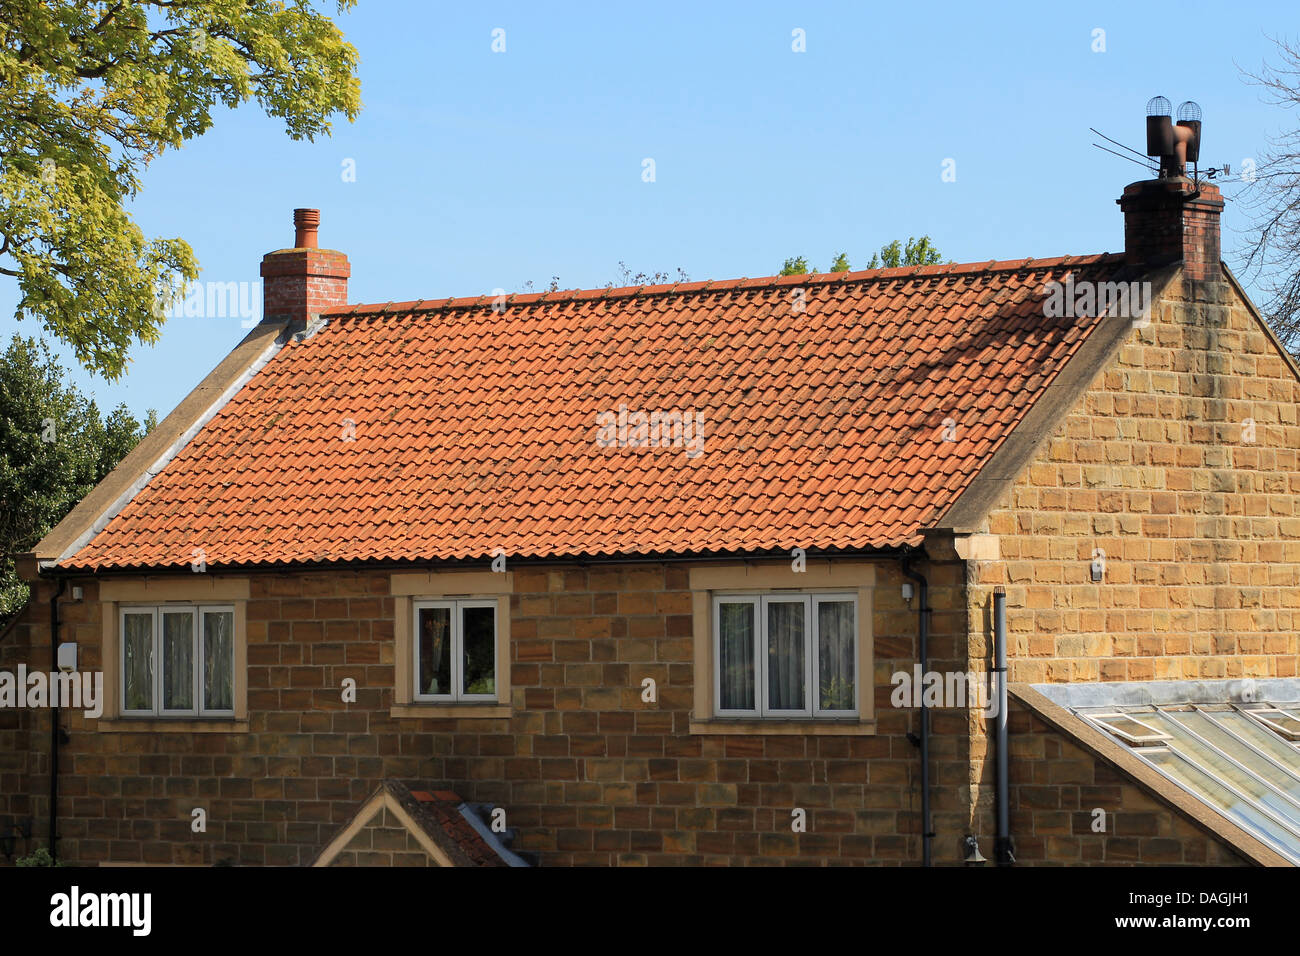 exterior of brick house with red roof tiles england stock photo